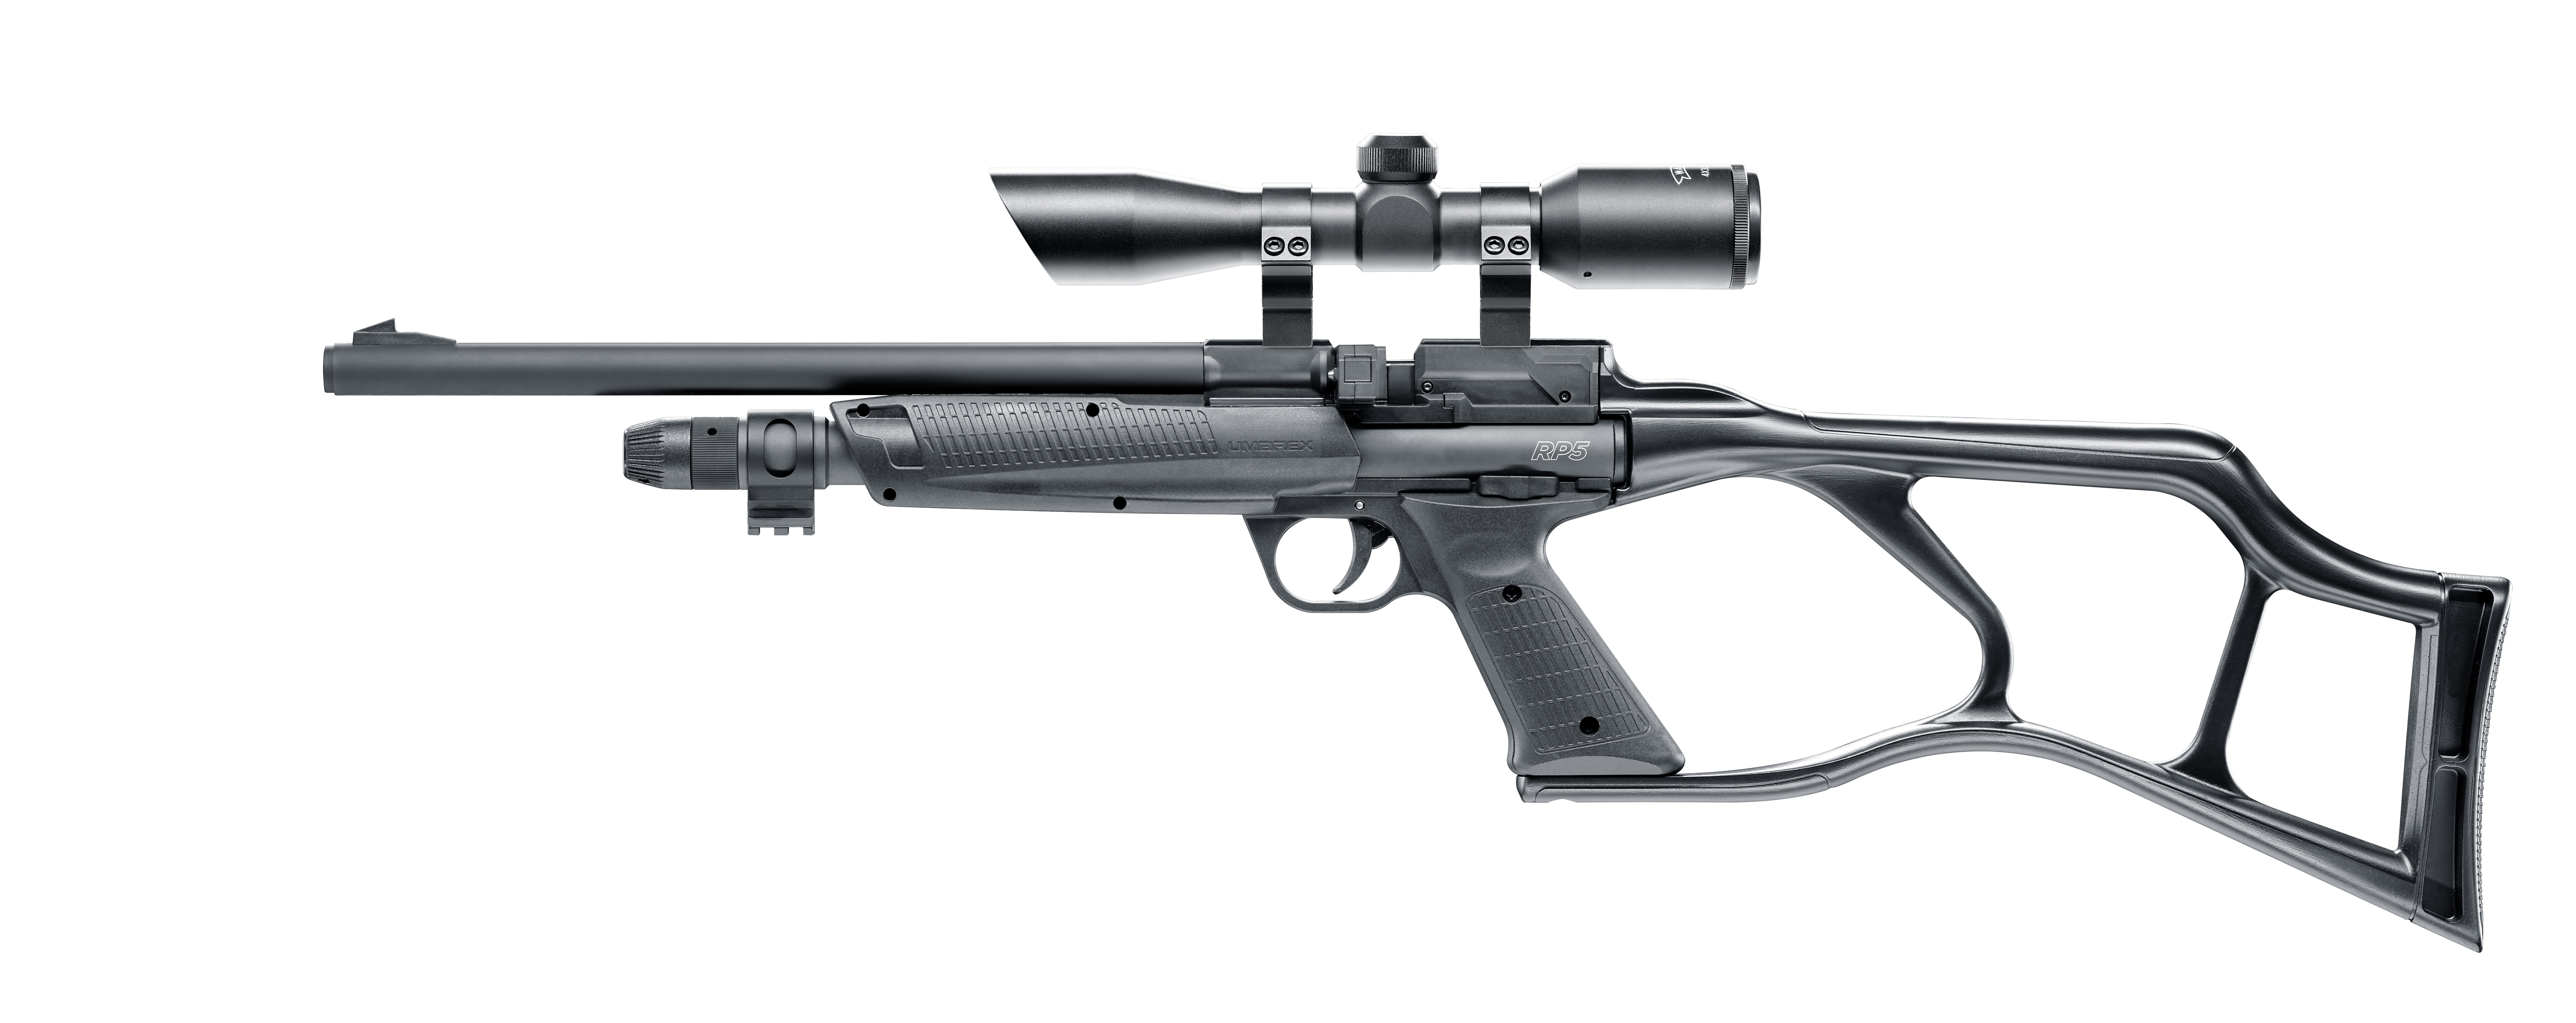 Umarex CO2 Airgun RP5 Carbine Kit